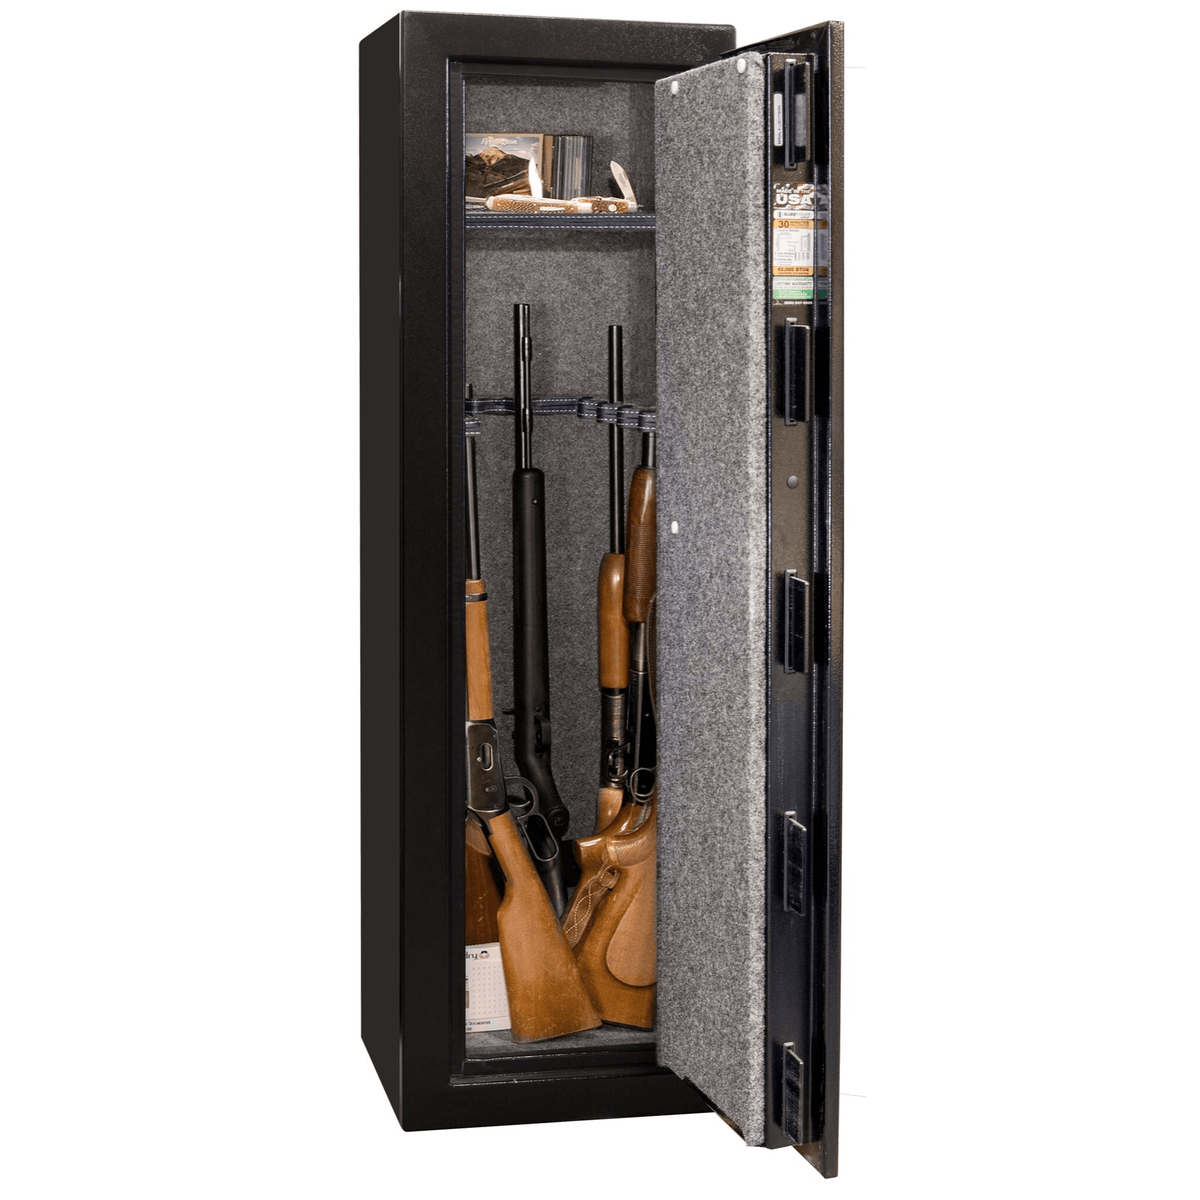 "Centurion | 12 | Level 1 Security | 30 Minute Fire Protection | Black | Black Mechanical Lock | 59.5""(H) x 18.25""(W) x 18""(D)"